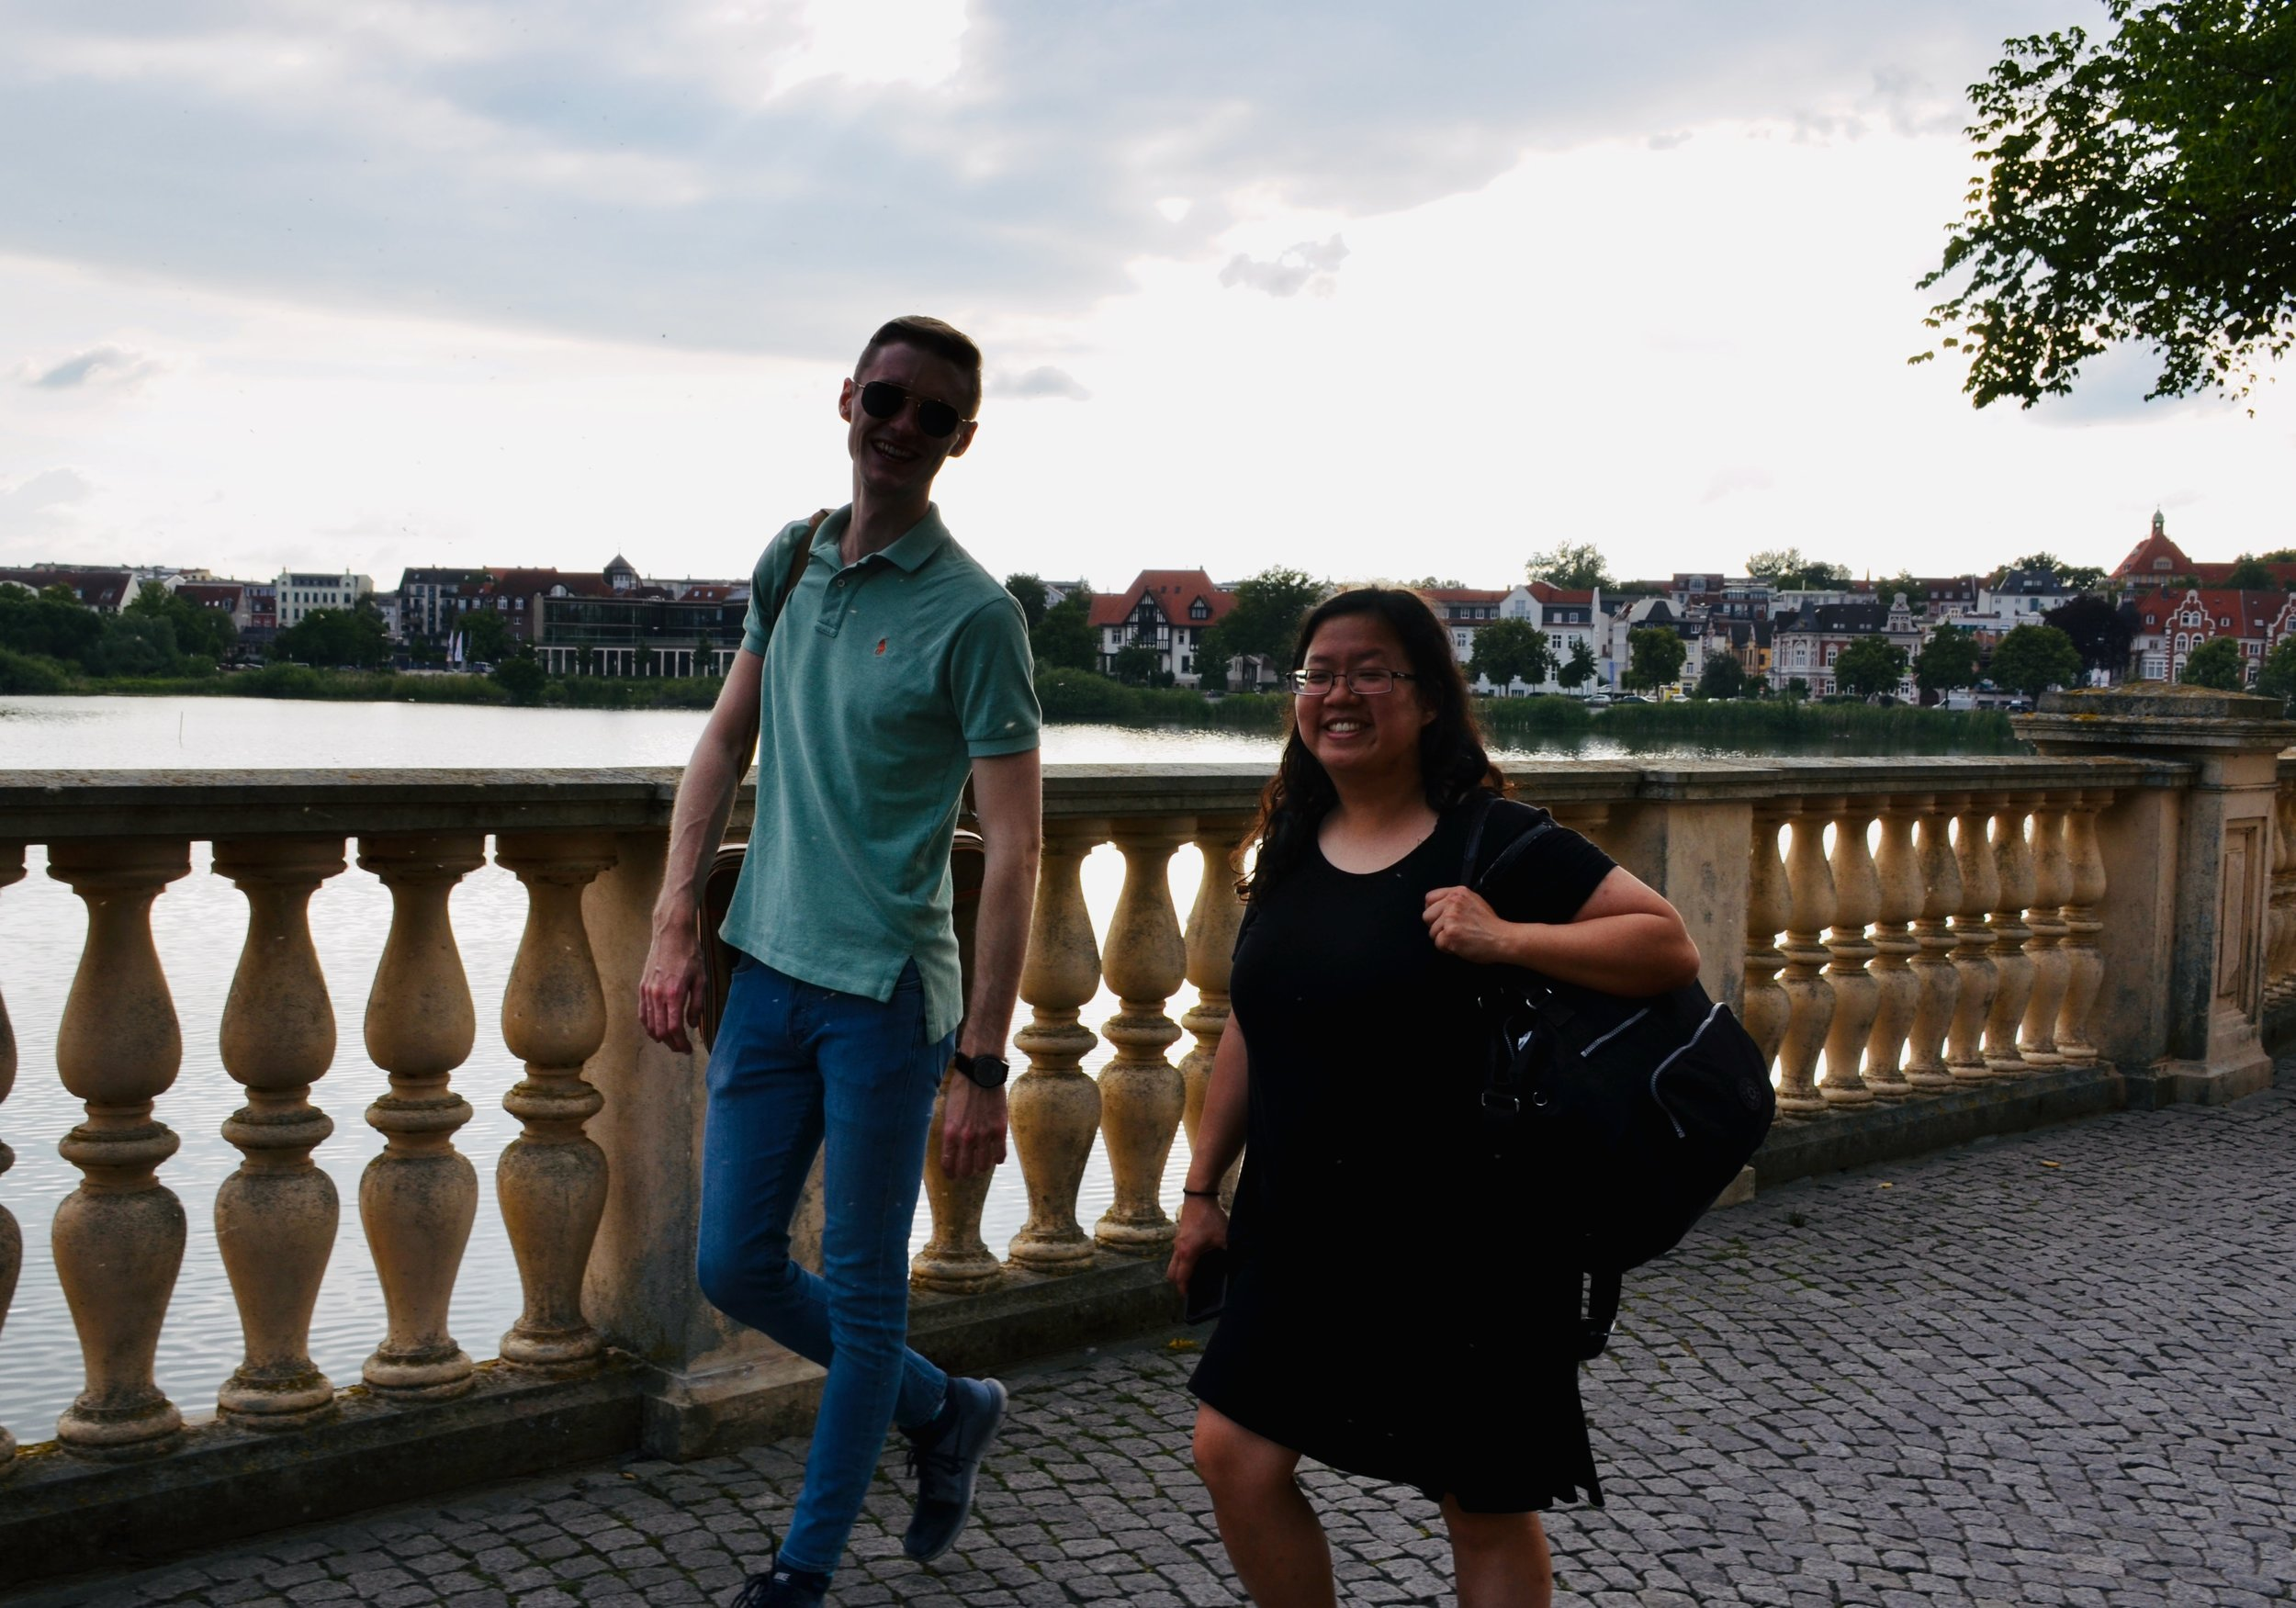 Evan Currie and Jennifer Hsiao enjoy a walk at Schwerin Castle.